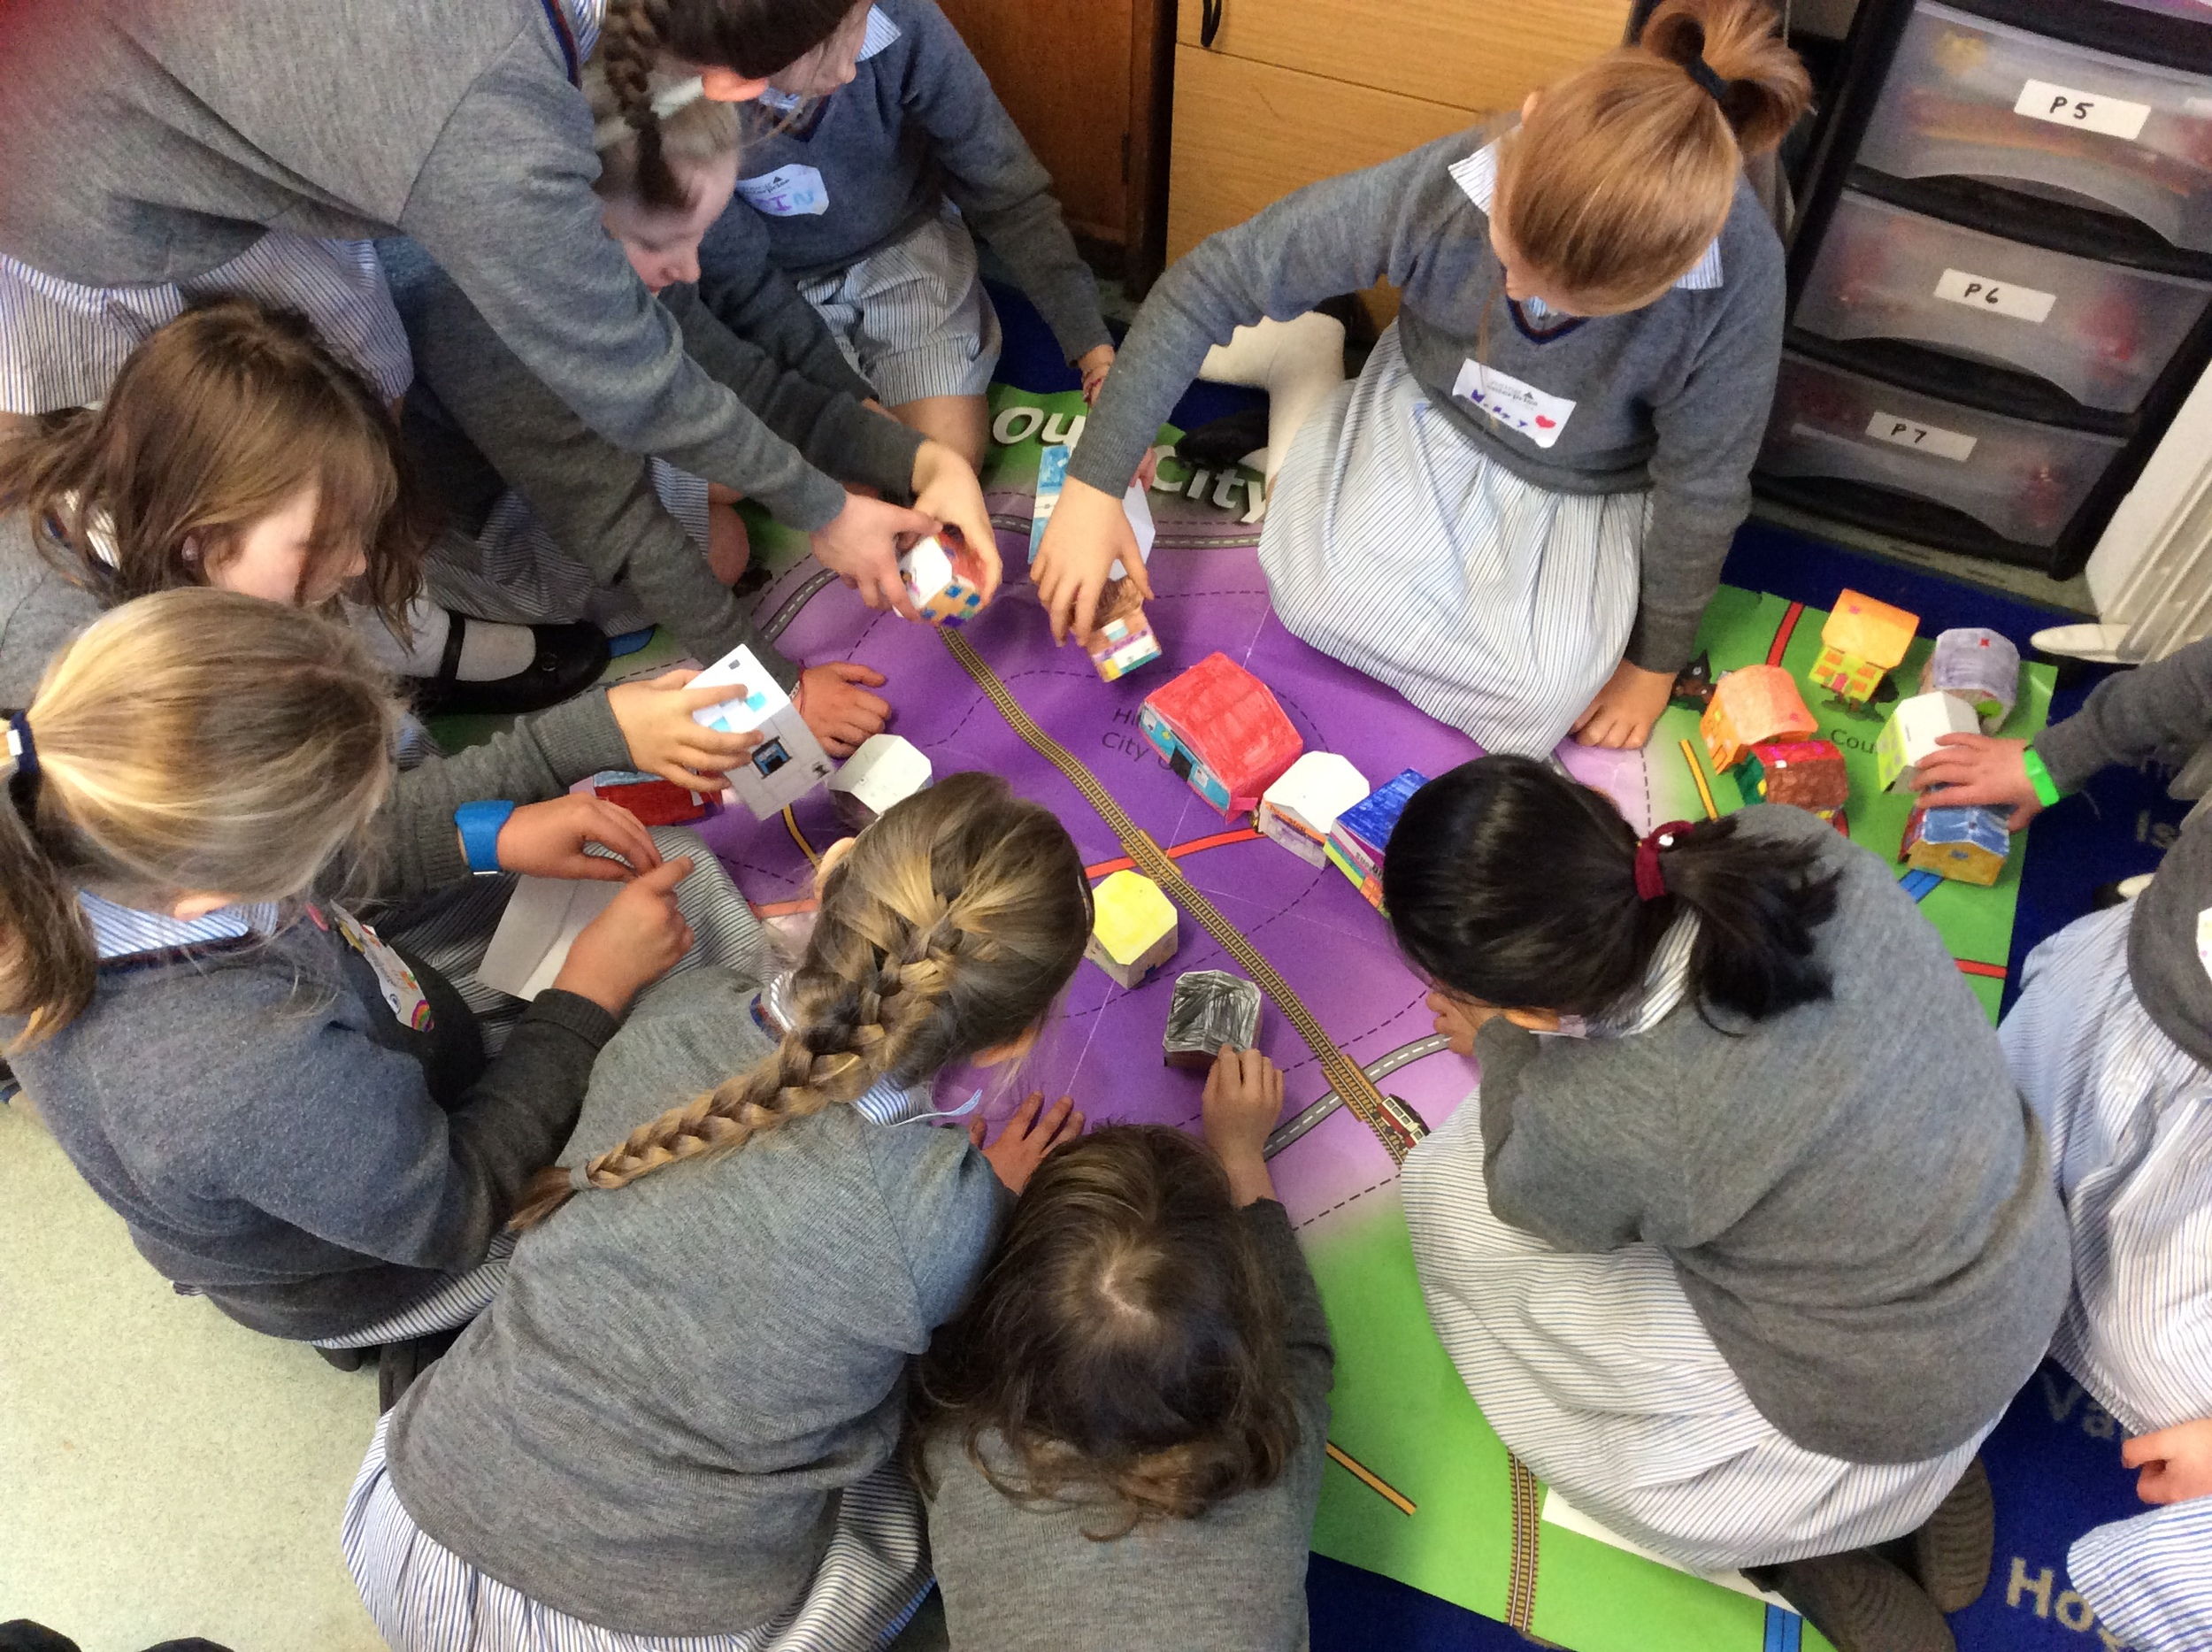 Prep 5 City Planners are problem-solving as they discuss their city design.